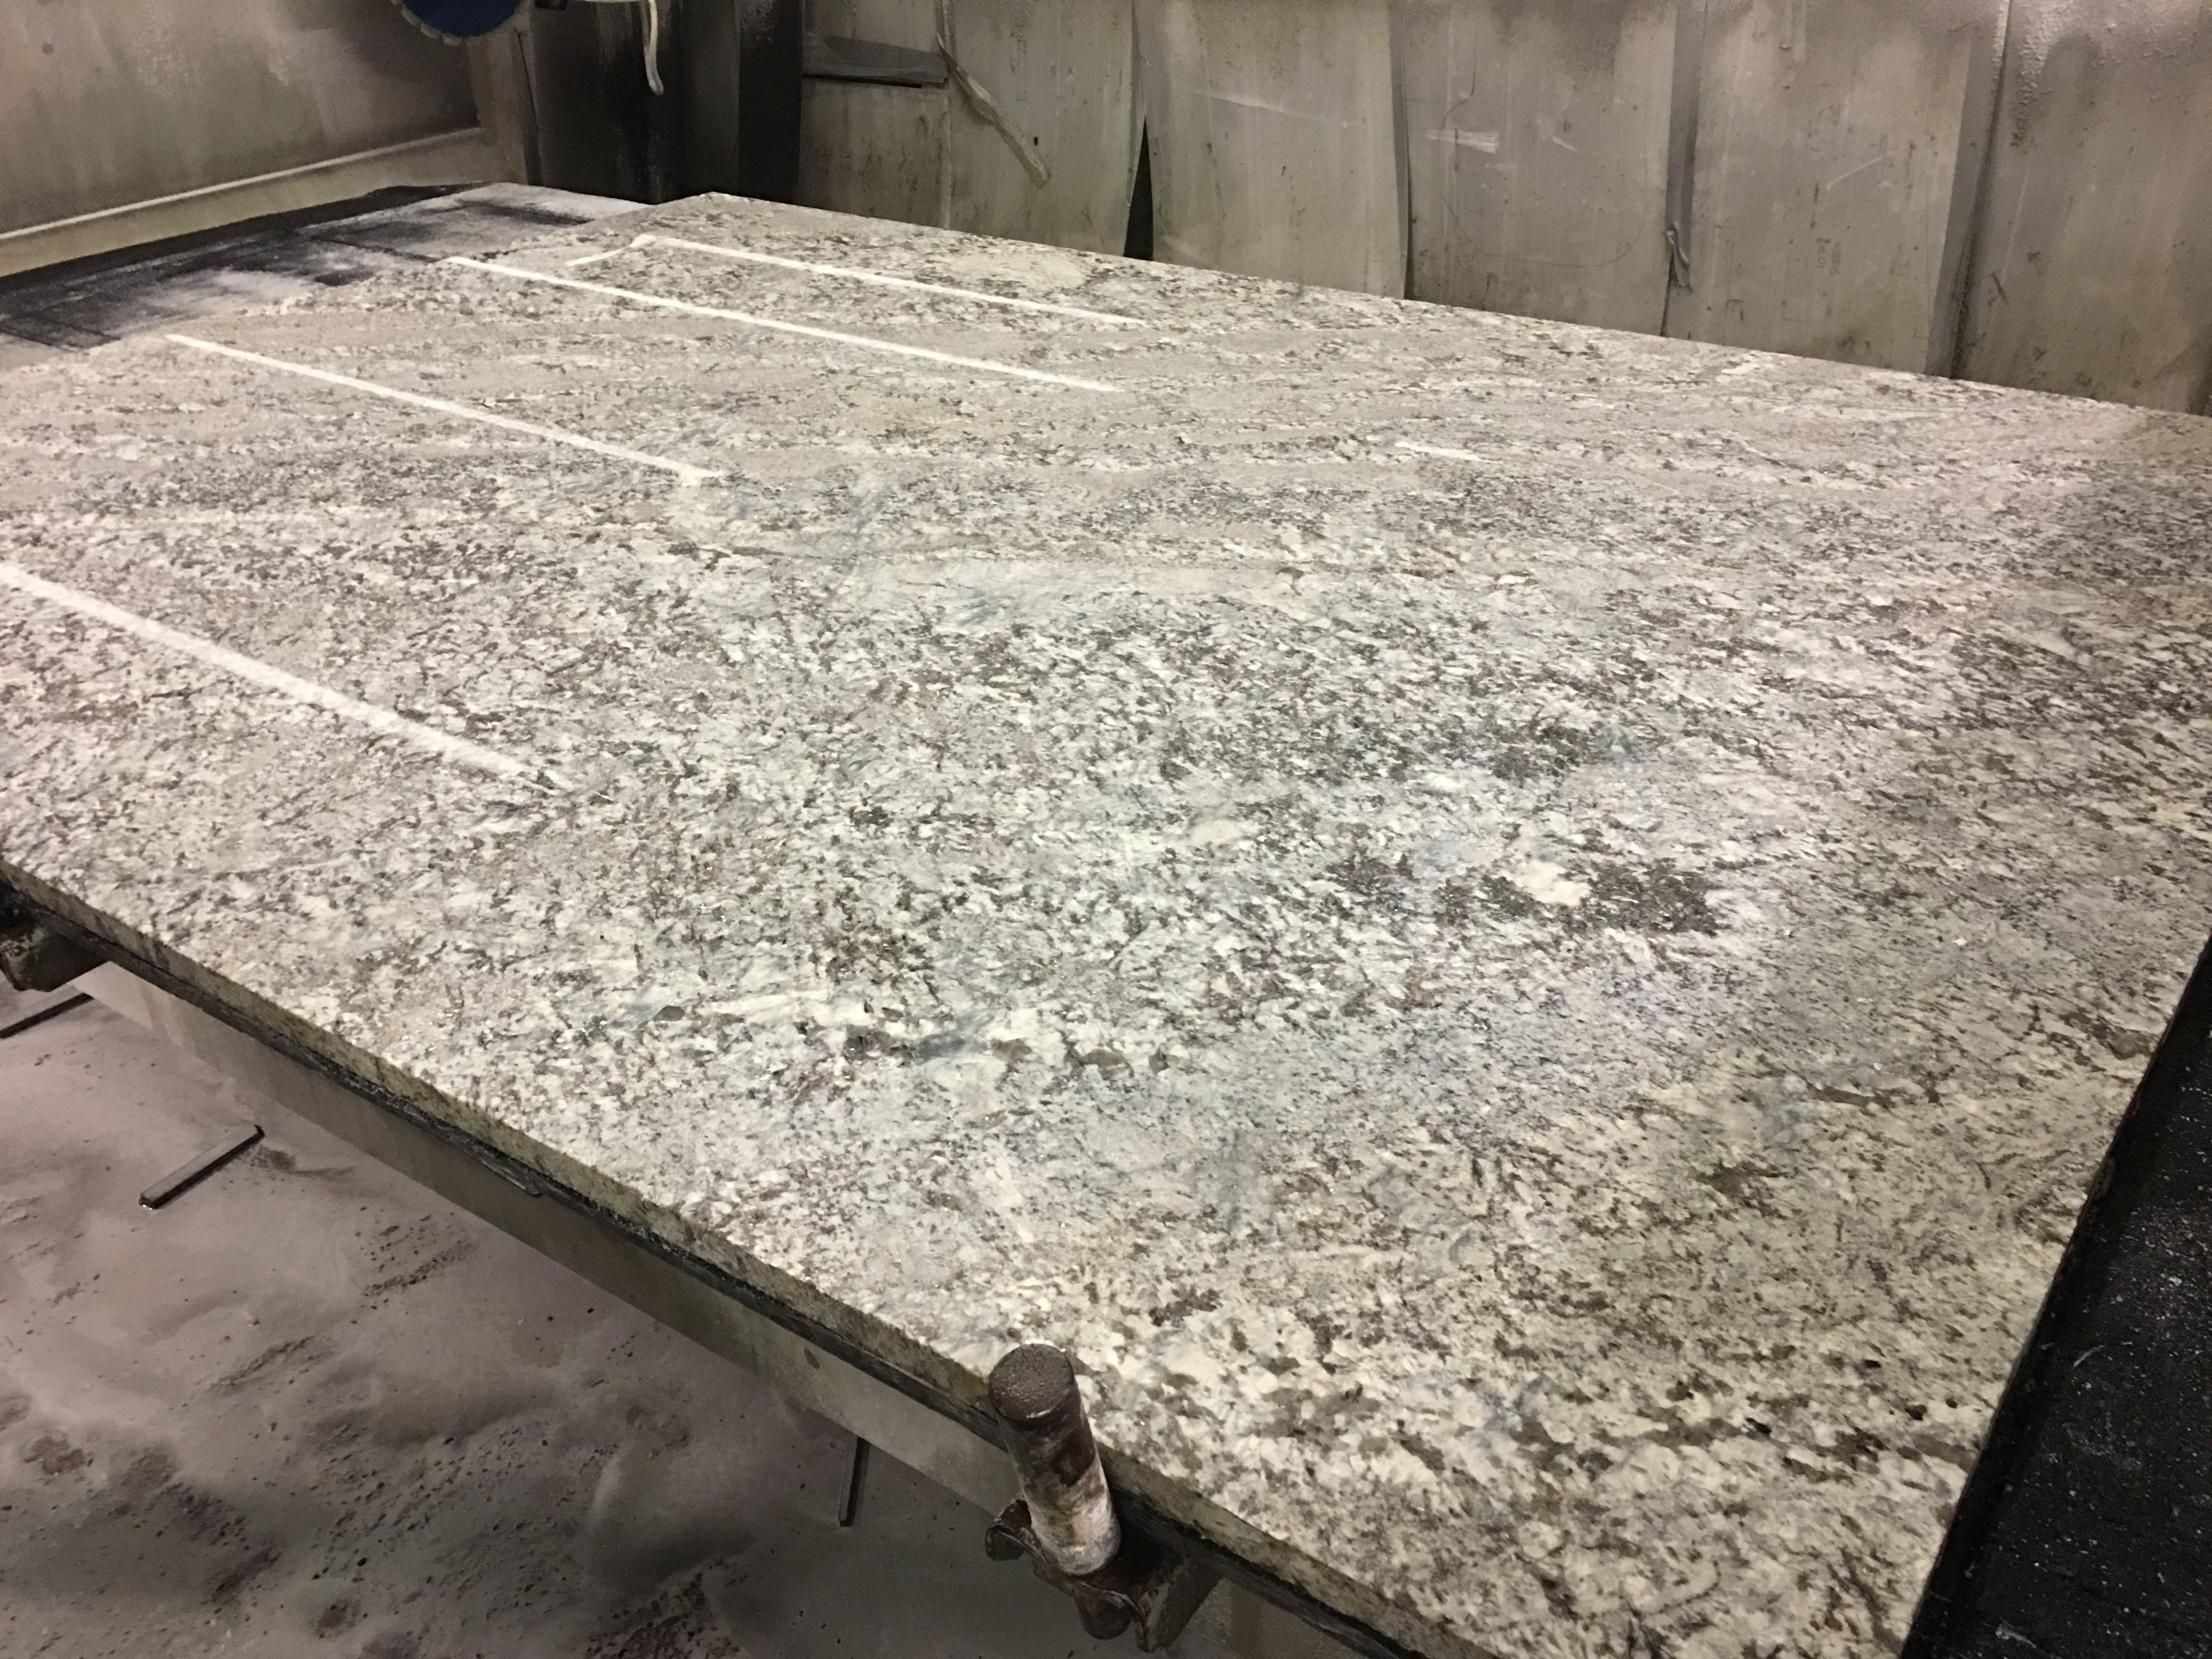 Lennon Vintage Granite Slab Ready To Be Cut Into Worktops